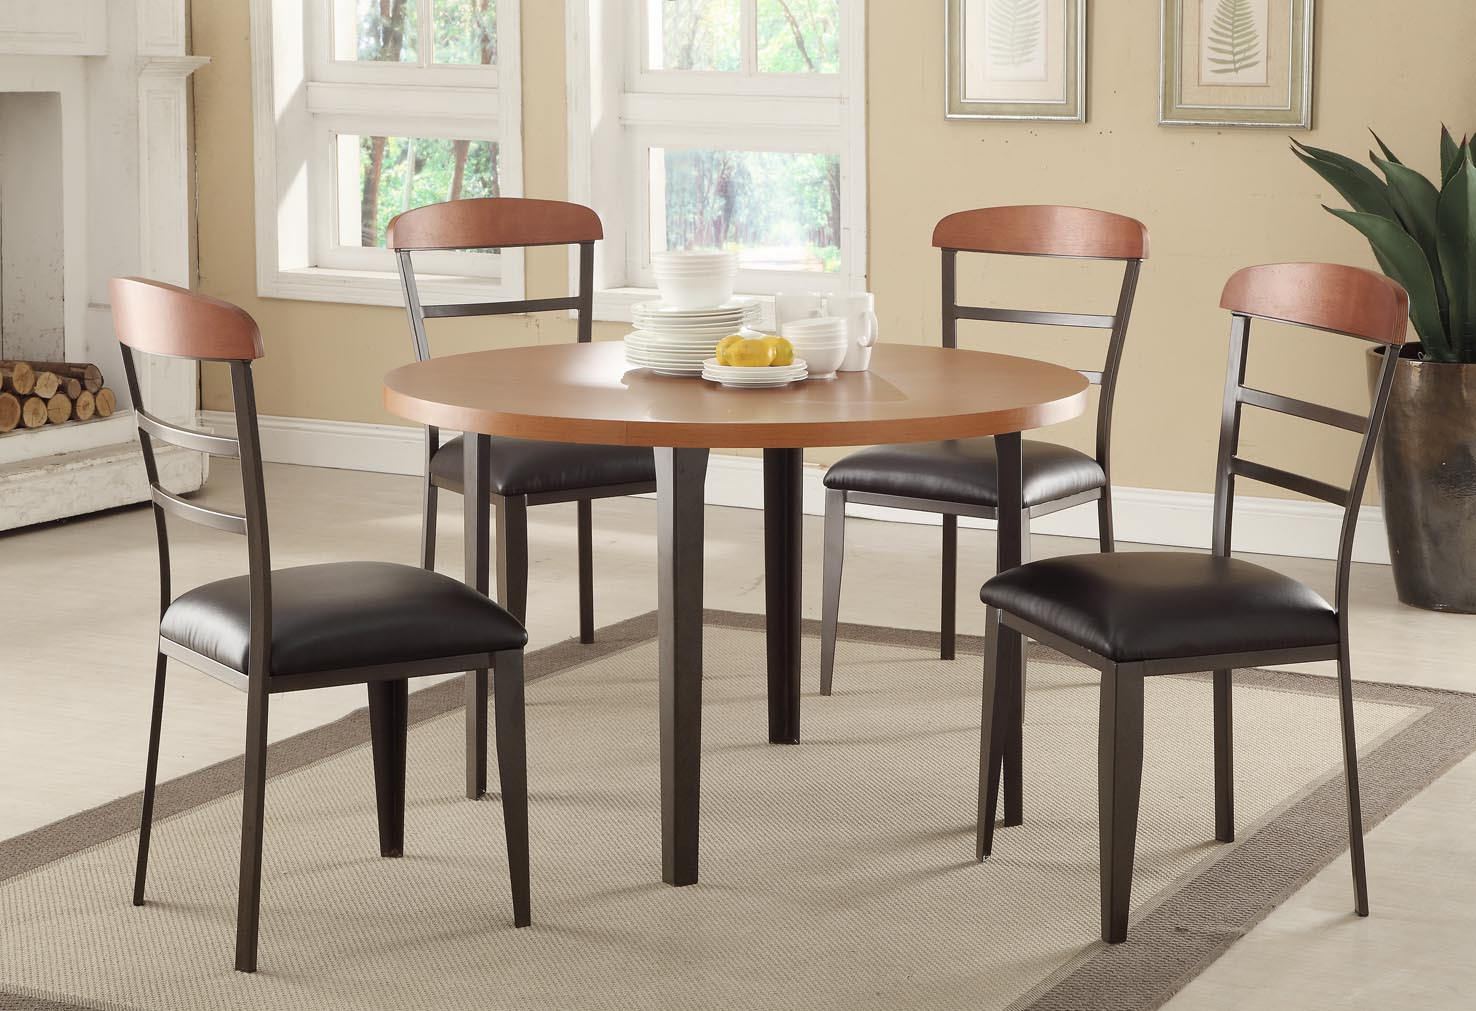 captivating-ikea-dining-room-sets-design-with-round-amber-table-and-ergonomic-high-back-chairs